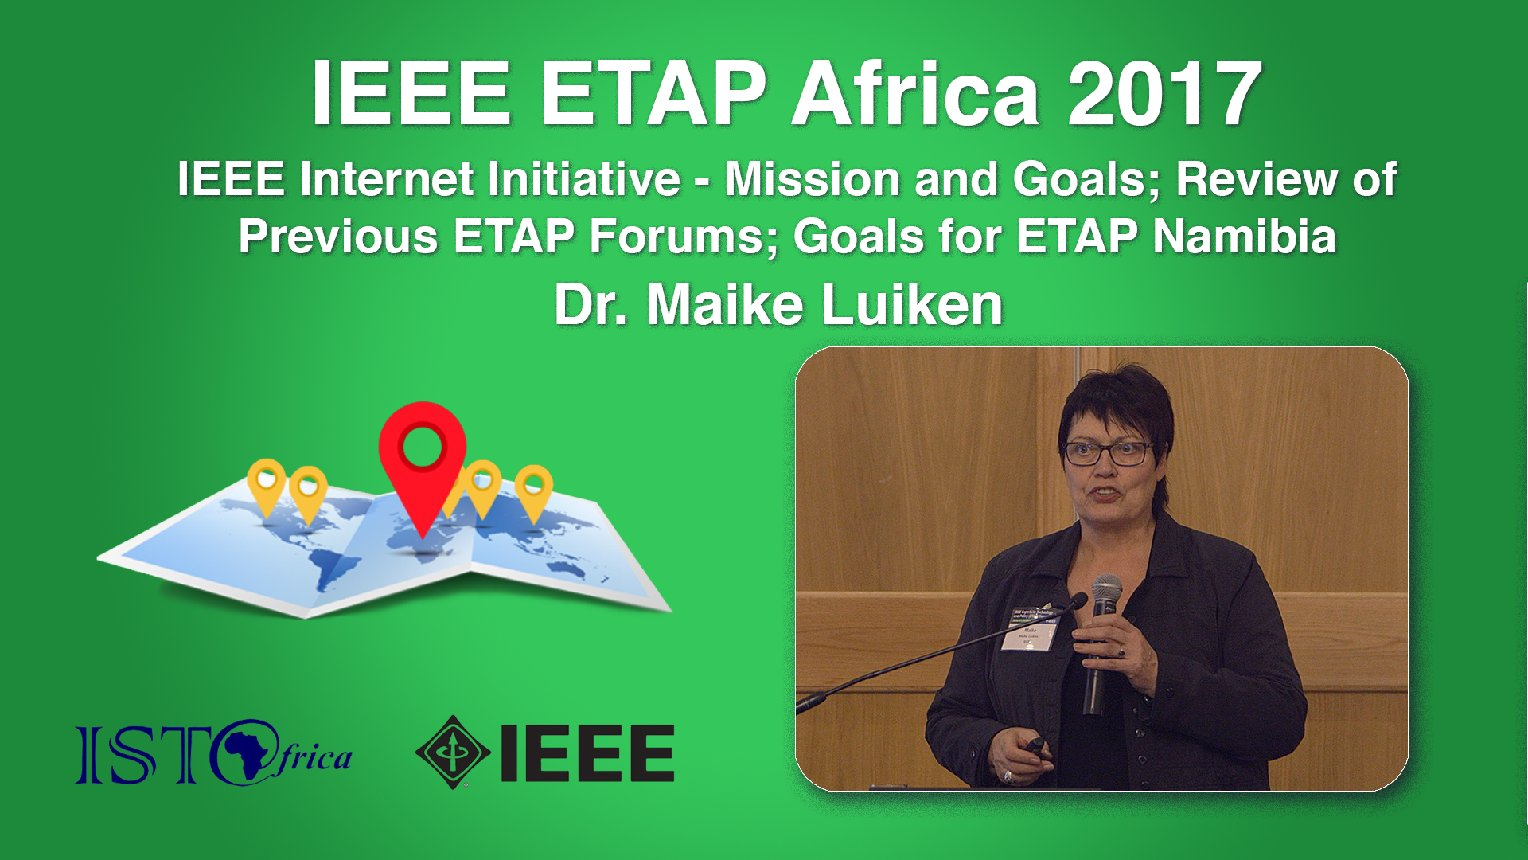 IEEE Internet Initiative - Mission and Goals; Review of Previous ETAP Forums; Goals for ETAP Namibia: Maike Luiken - ETAP Forum Namibia, Africa 2017